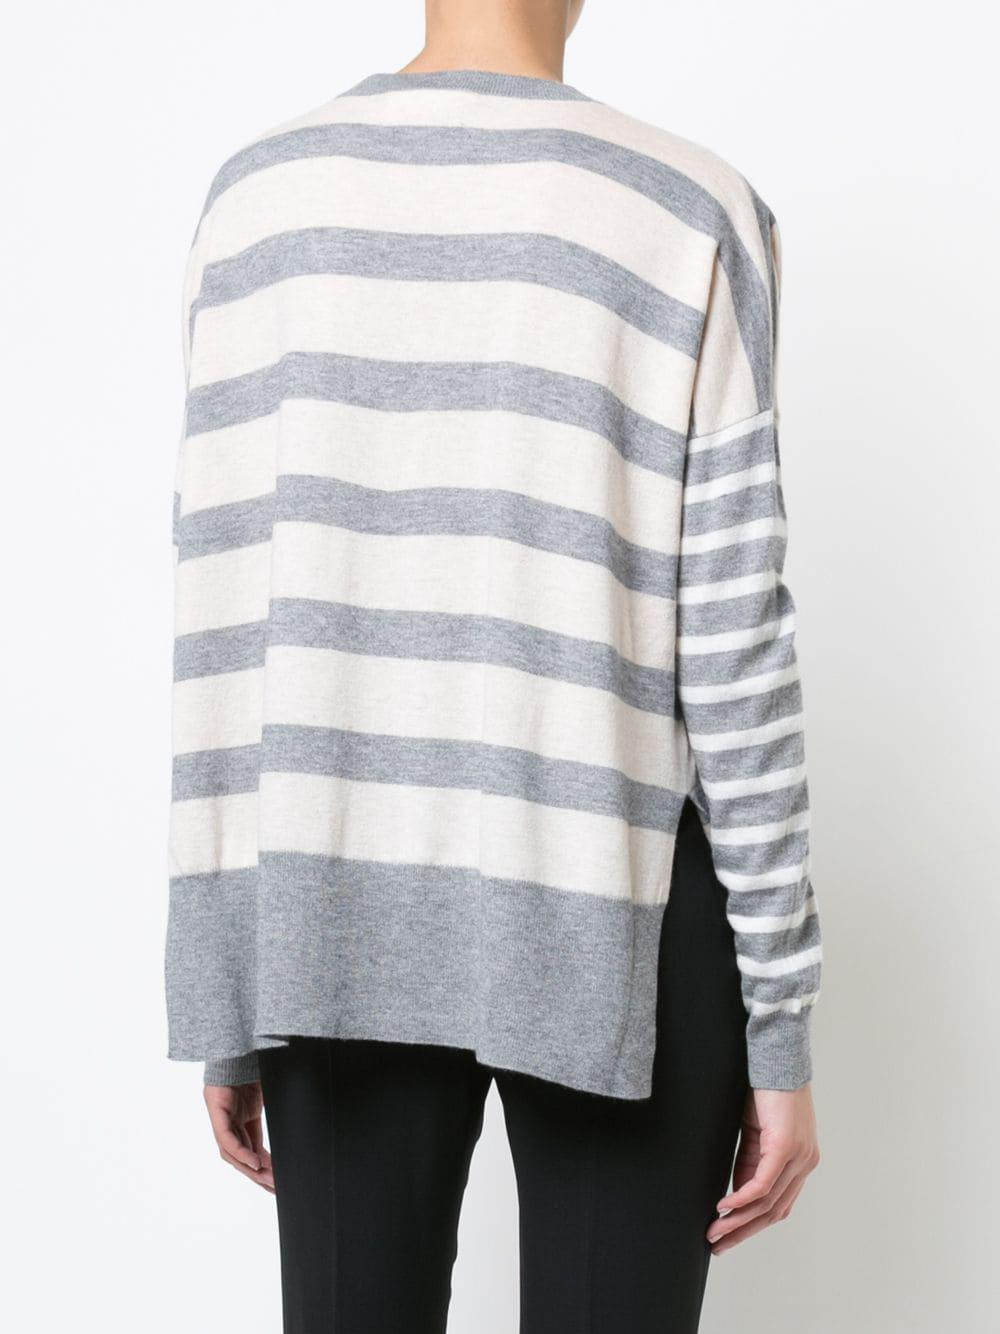 View 10 Striped Derek Neck Lyst Lam V Crosby Fullscreen Multicolor Sweater  zIzwnrAB5 beb470d5d95